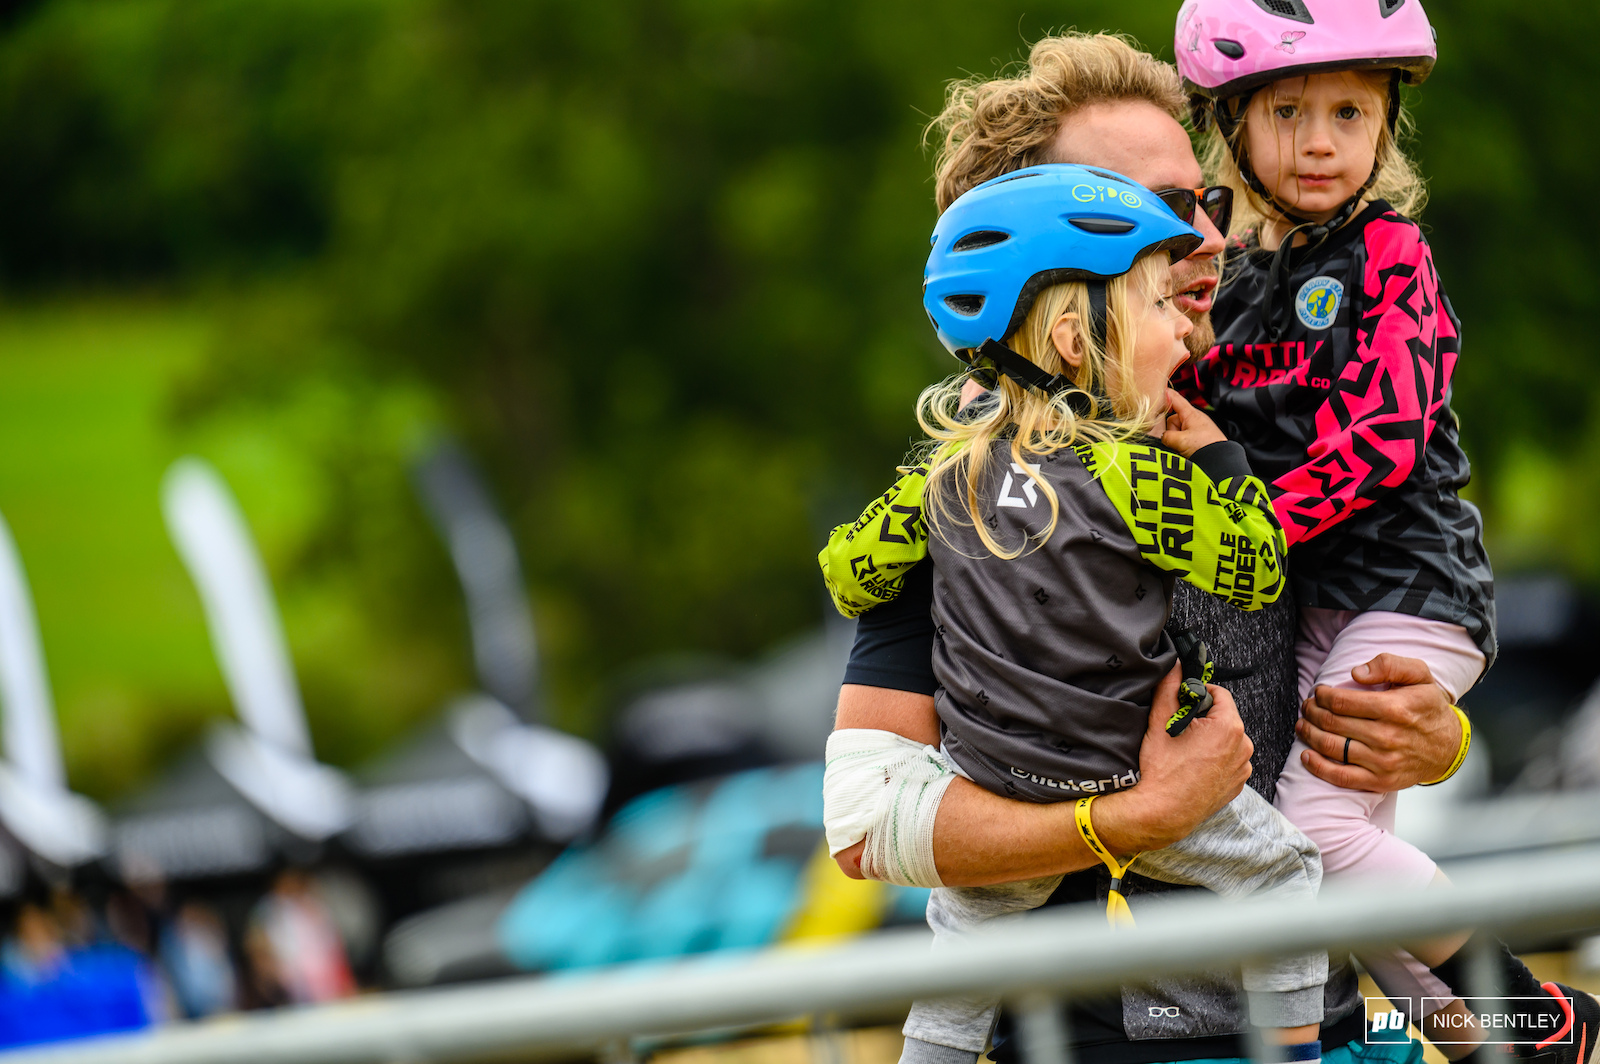 The Malverns Classics is the perfect family orientated bike festival to introduce young riders into competing